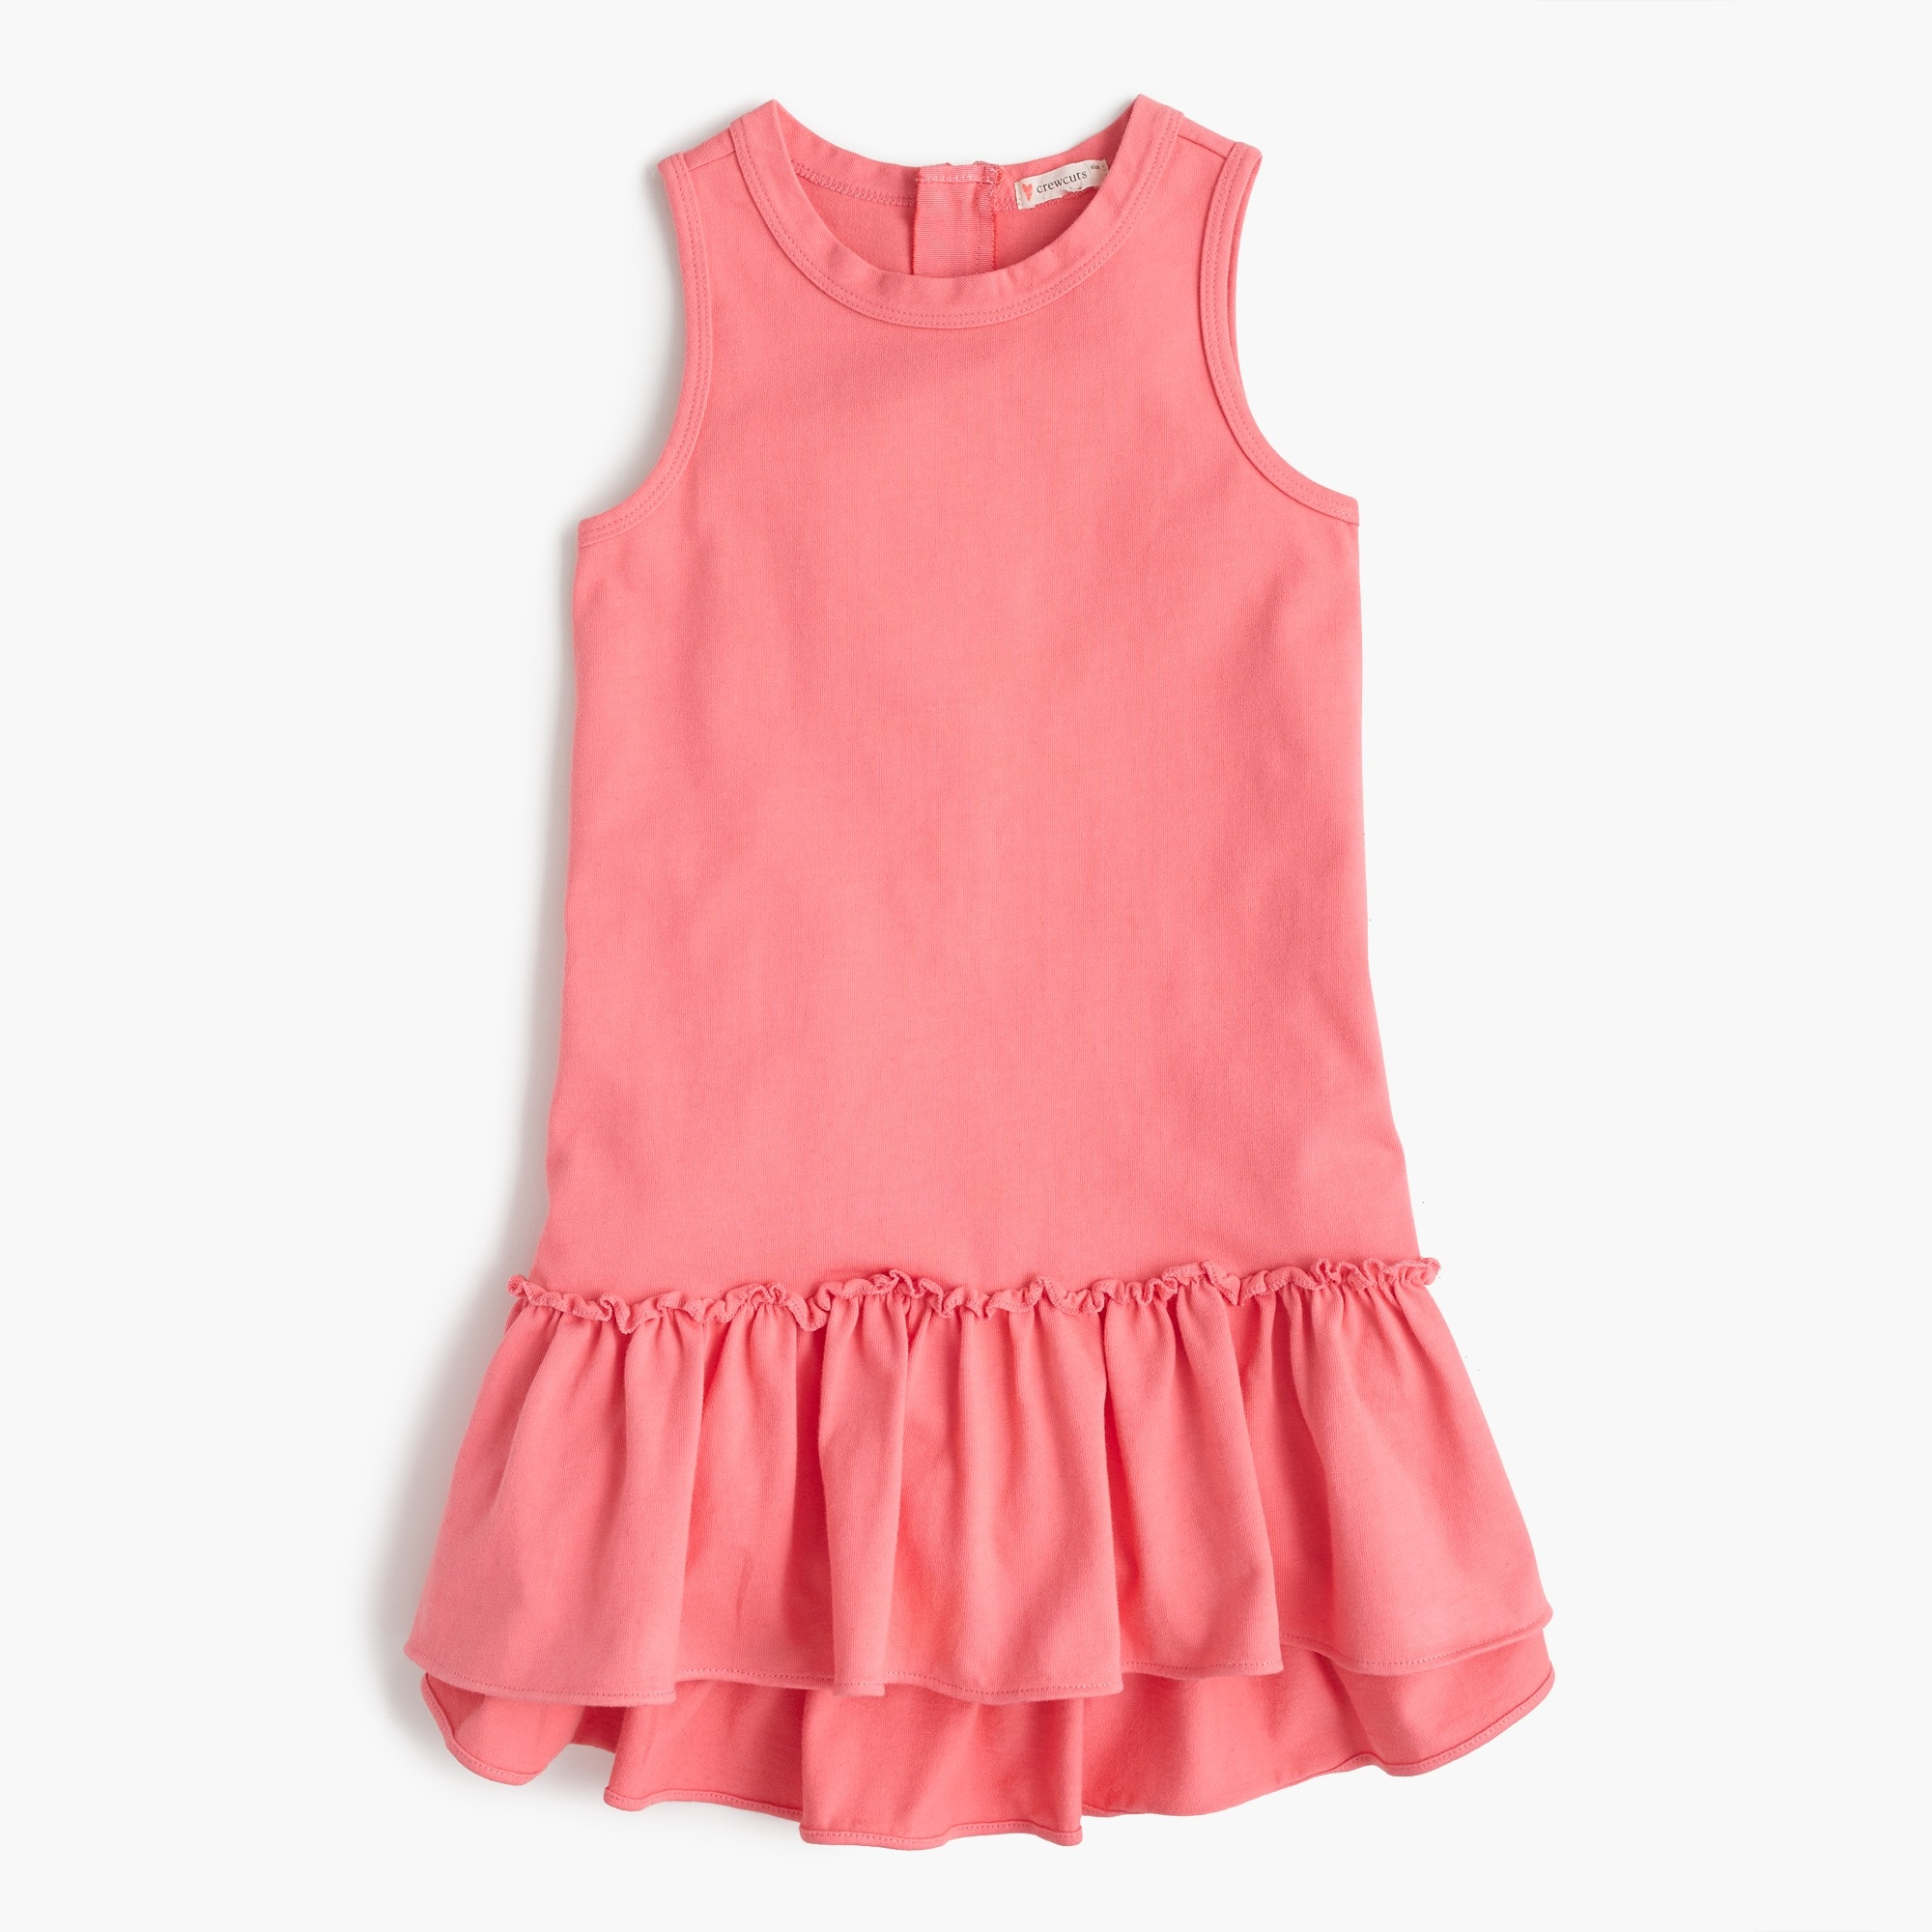 Girls' ruffle-hem dress girl new arrivals c